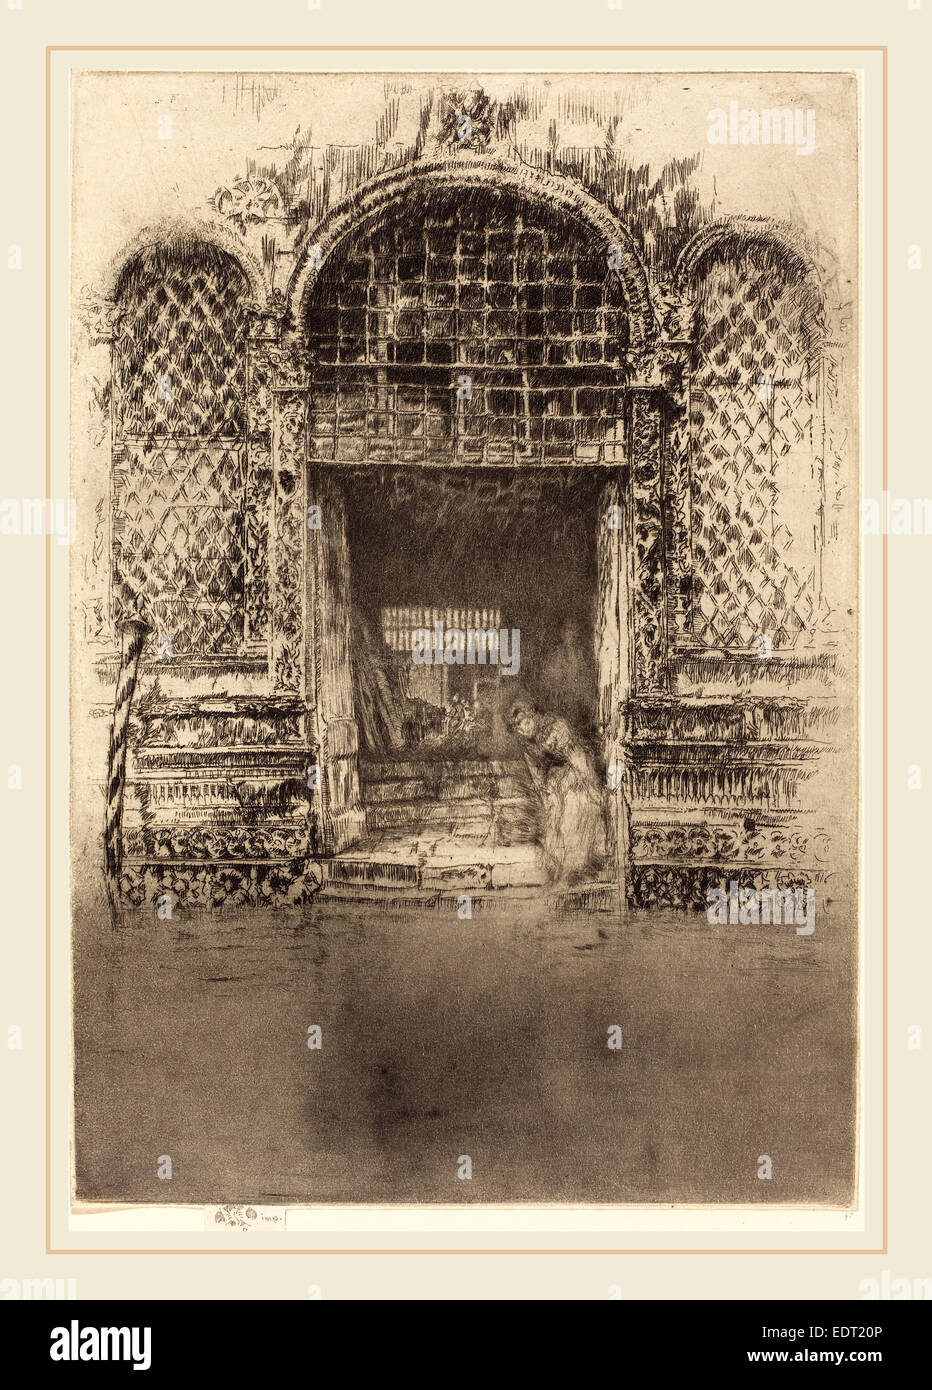 James McNeill Whistler (American, 1834-1903), The Doorway, 1880, etching - Stock Image